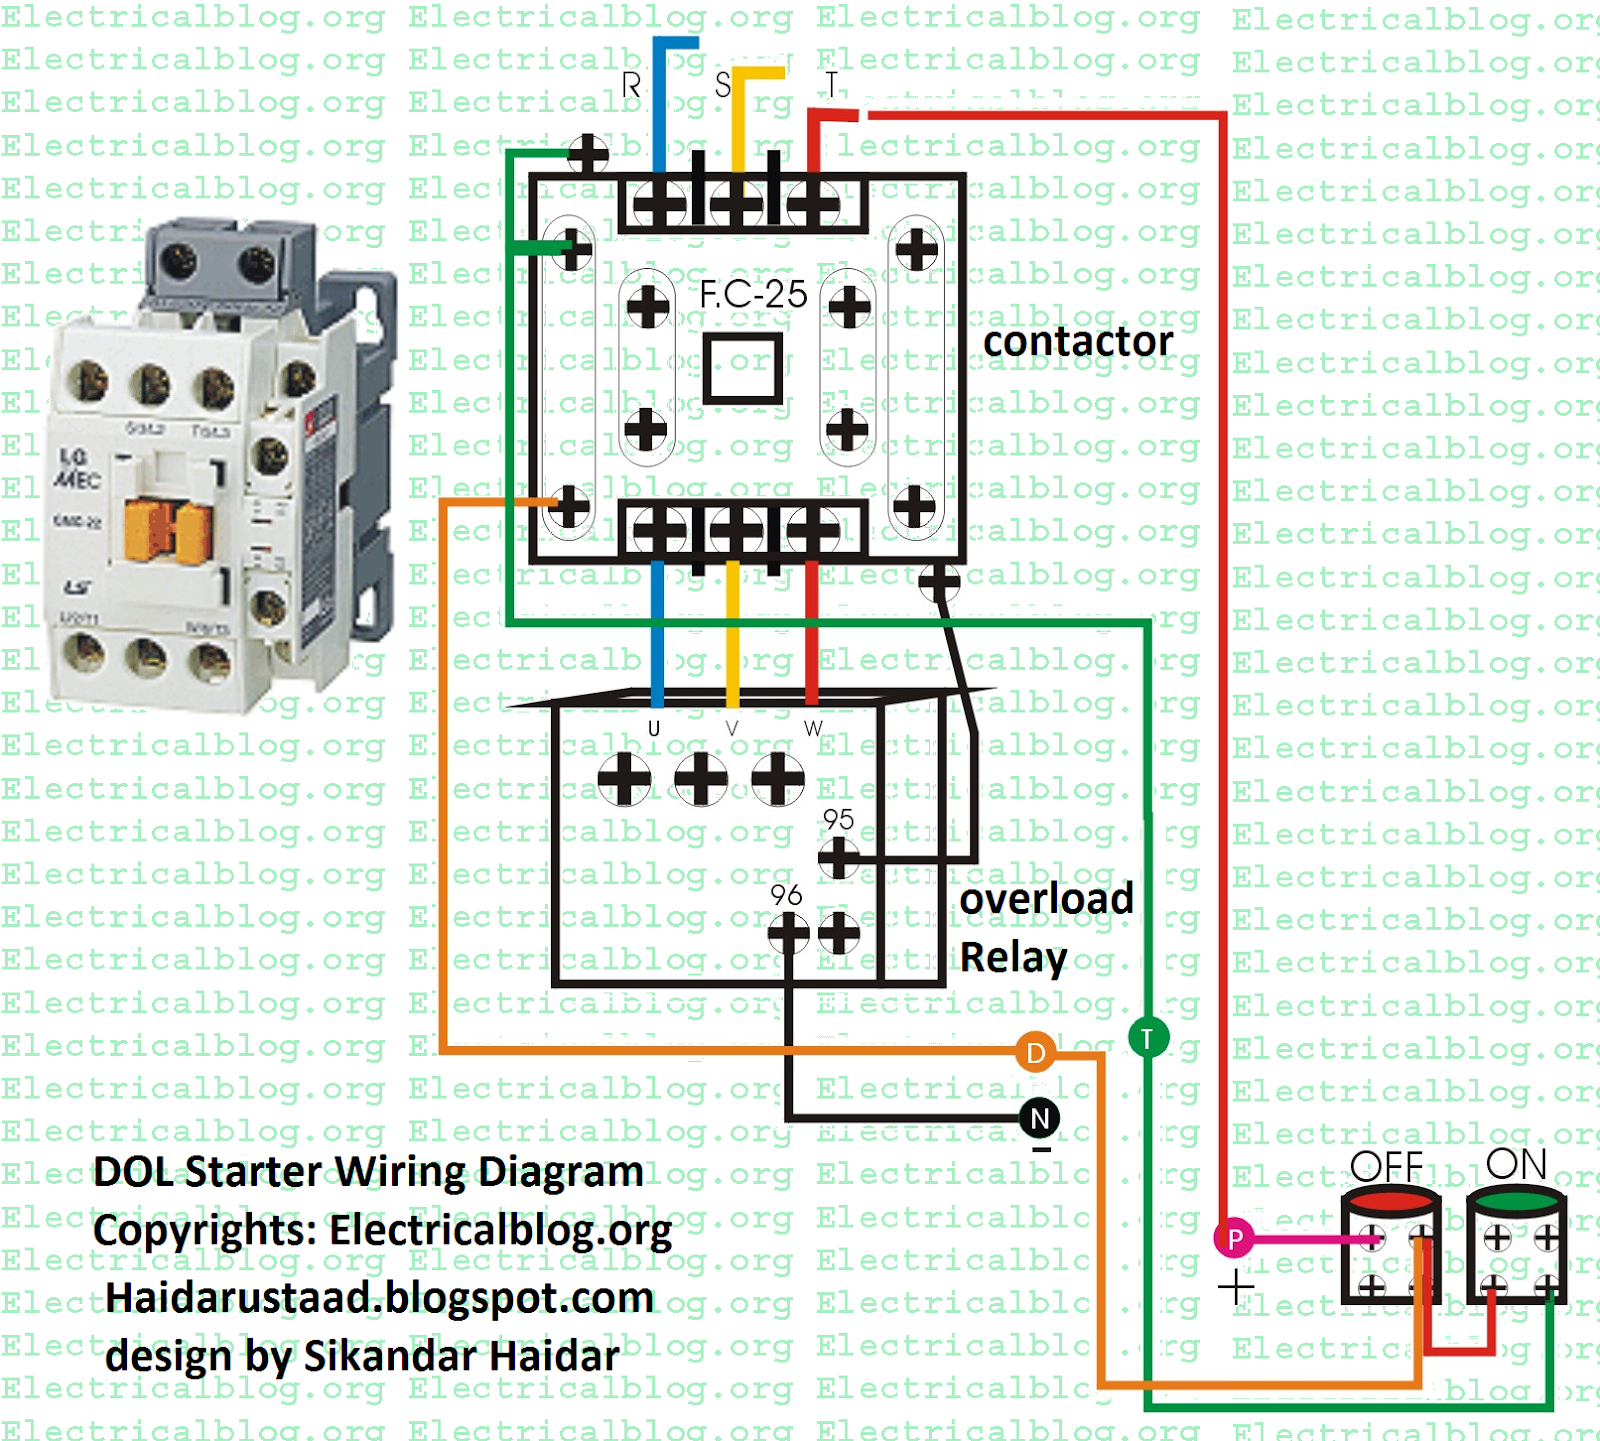 Direct Online Starter Wiring Diagram « Electrical and ...